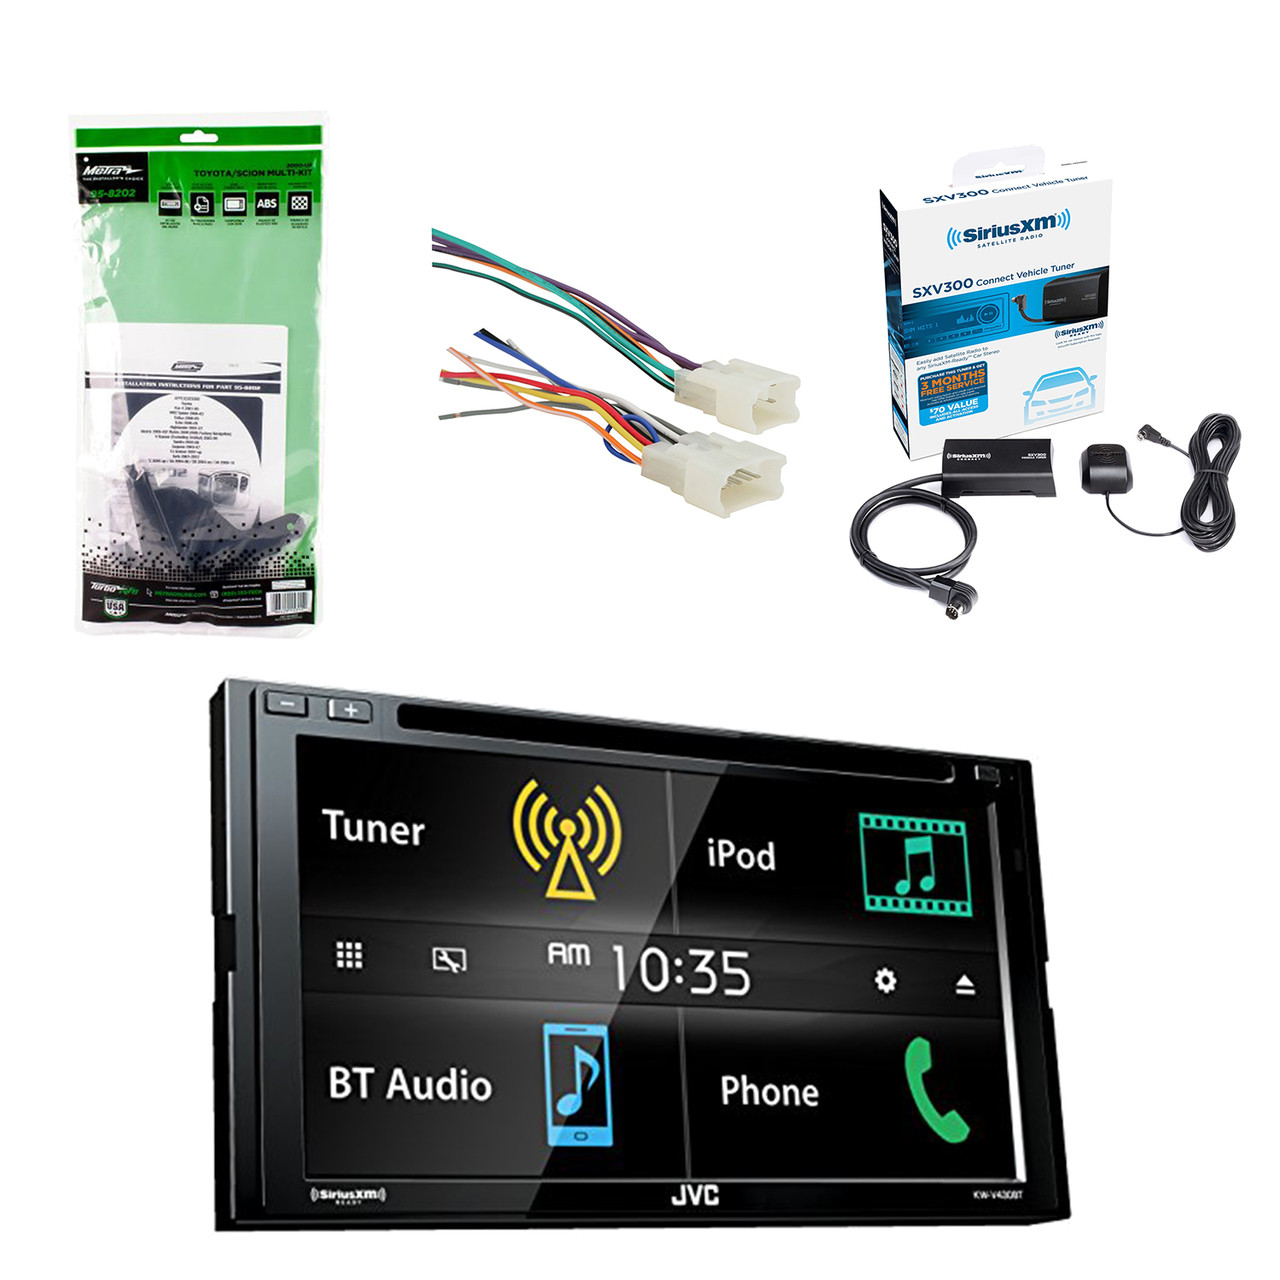 JVC 6.8 Inch LCD Touchscreen 2-DIN Bluetooth Car Stereo Receiver W/SiriusXM Jvc Wiring Harness Toyota on toyota key switch, toyota cooling harness, toyota headlight wiring, toyota iat sensor, toyota spiral cable, toyota door sill protector, toyota steering sensor, toyota wiring switches, toyota line lock, toyota grab handle, toyota strut mount, toyota hood latch, toyota frame paint, toyota body control module, toyota headlight cover, toyota coil packs, toyota throttle cable, toyota rear wheel, toyota temp sensor, toyota ac clutch,